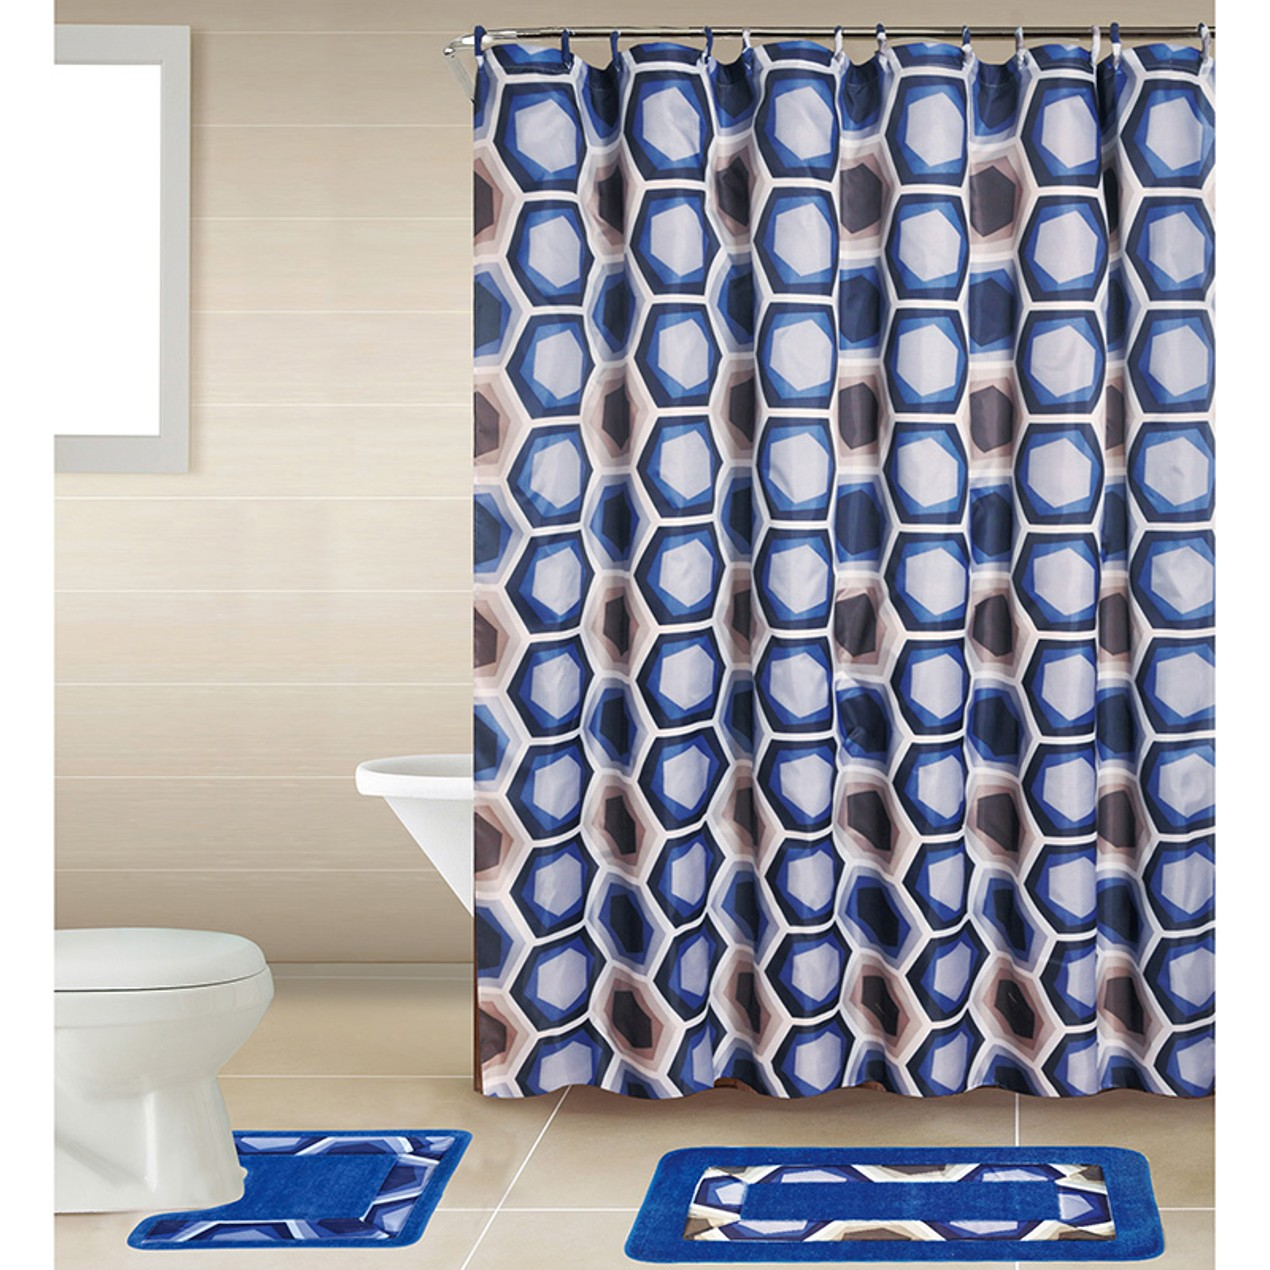 18 Piece Bath Set Boutique Shower Curtain And Rug